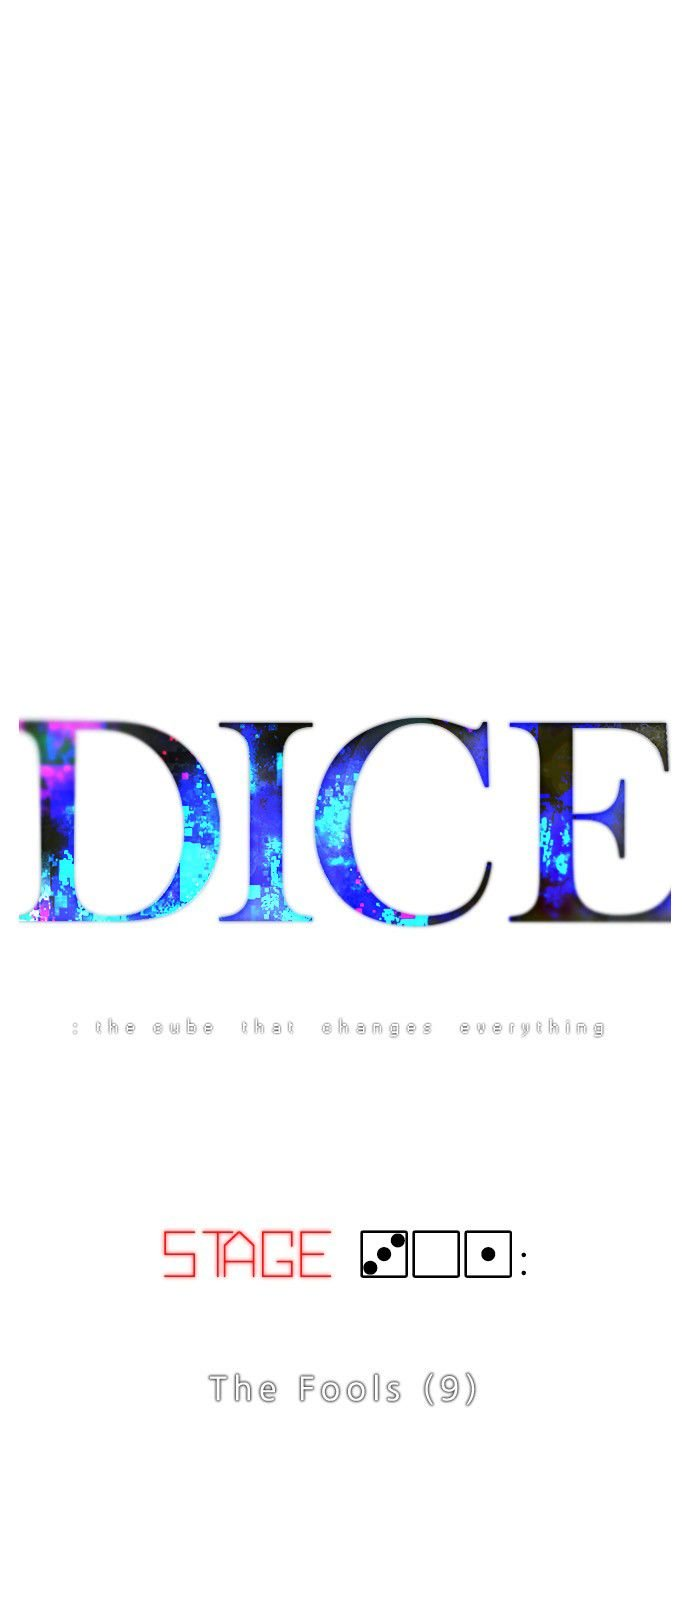 DICE: The Cube that Changes Everything 301